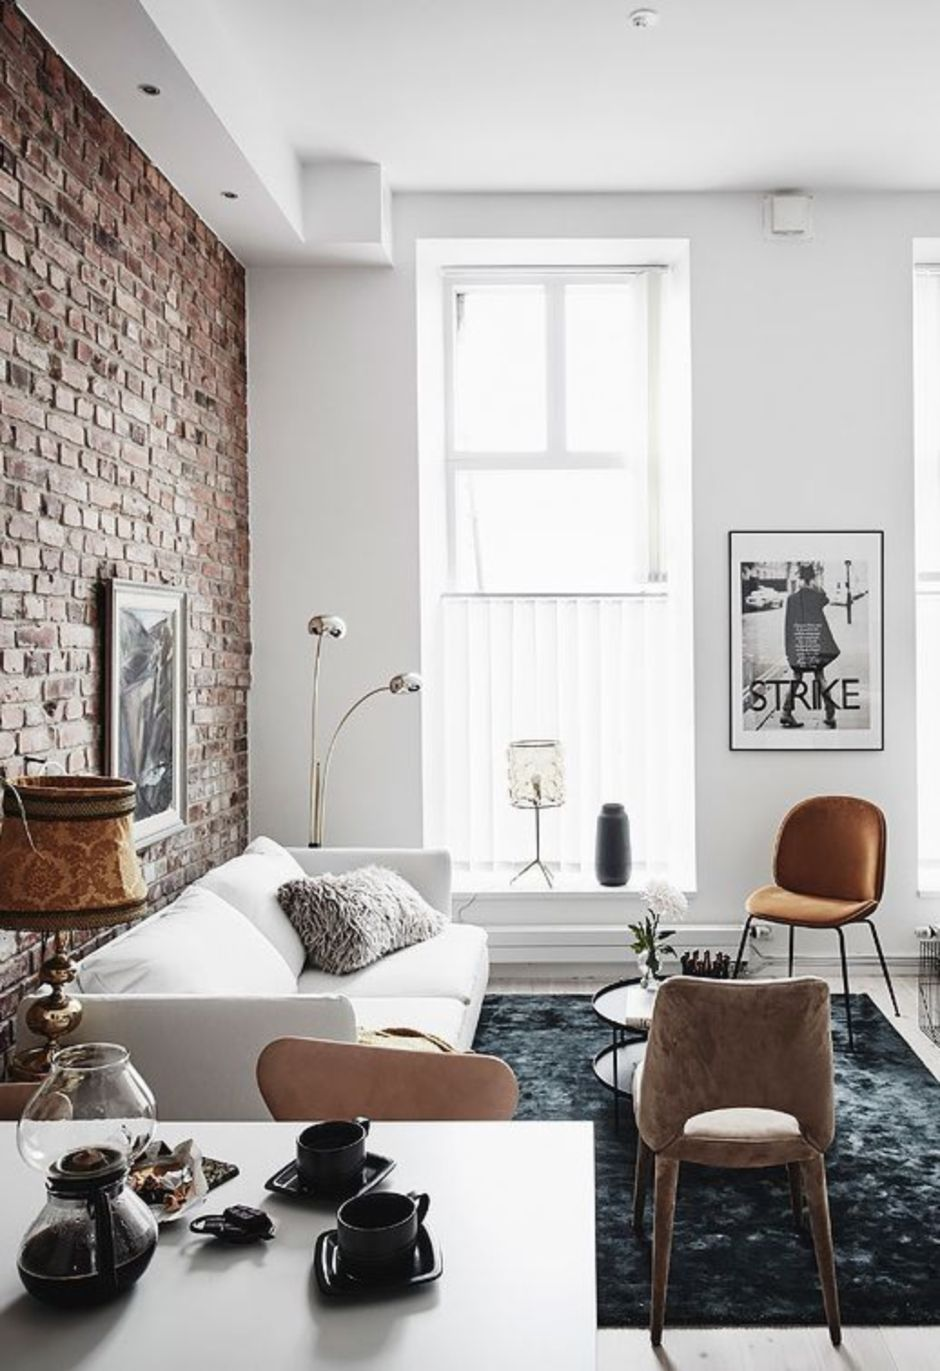 Brick Wall Living Room: Fascinating Exposed Brick Wall For Living Room 27